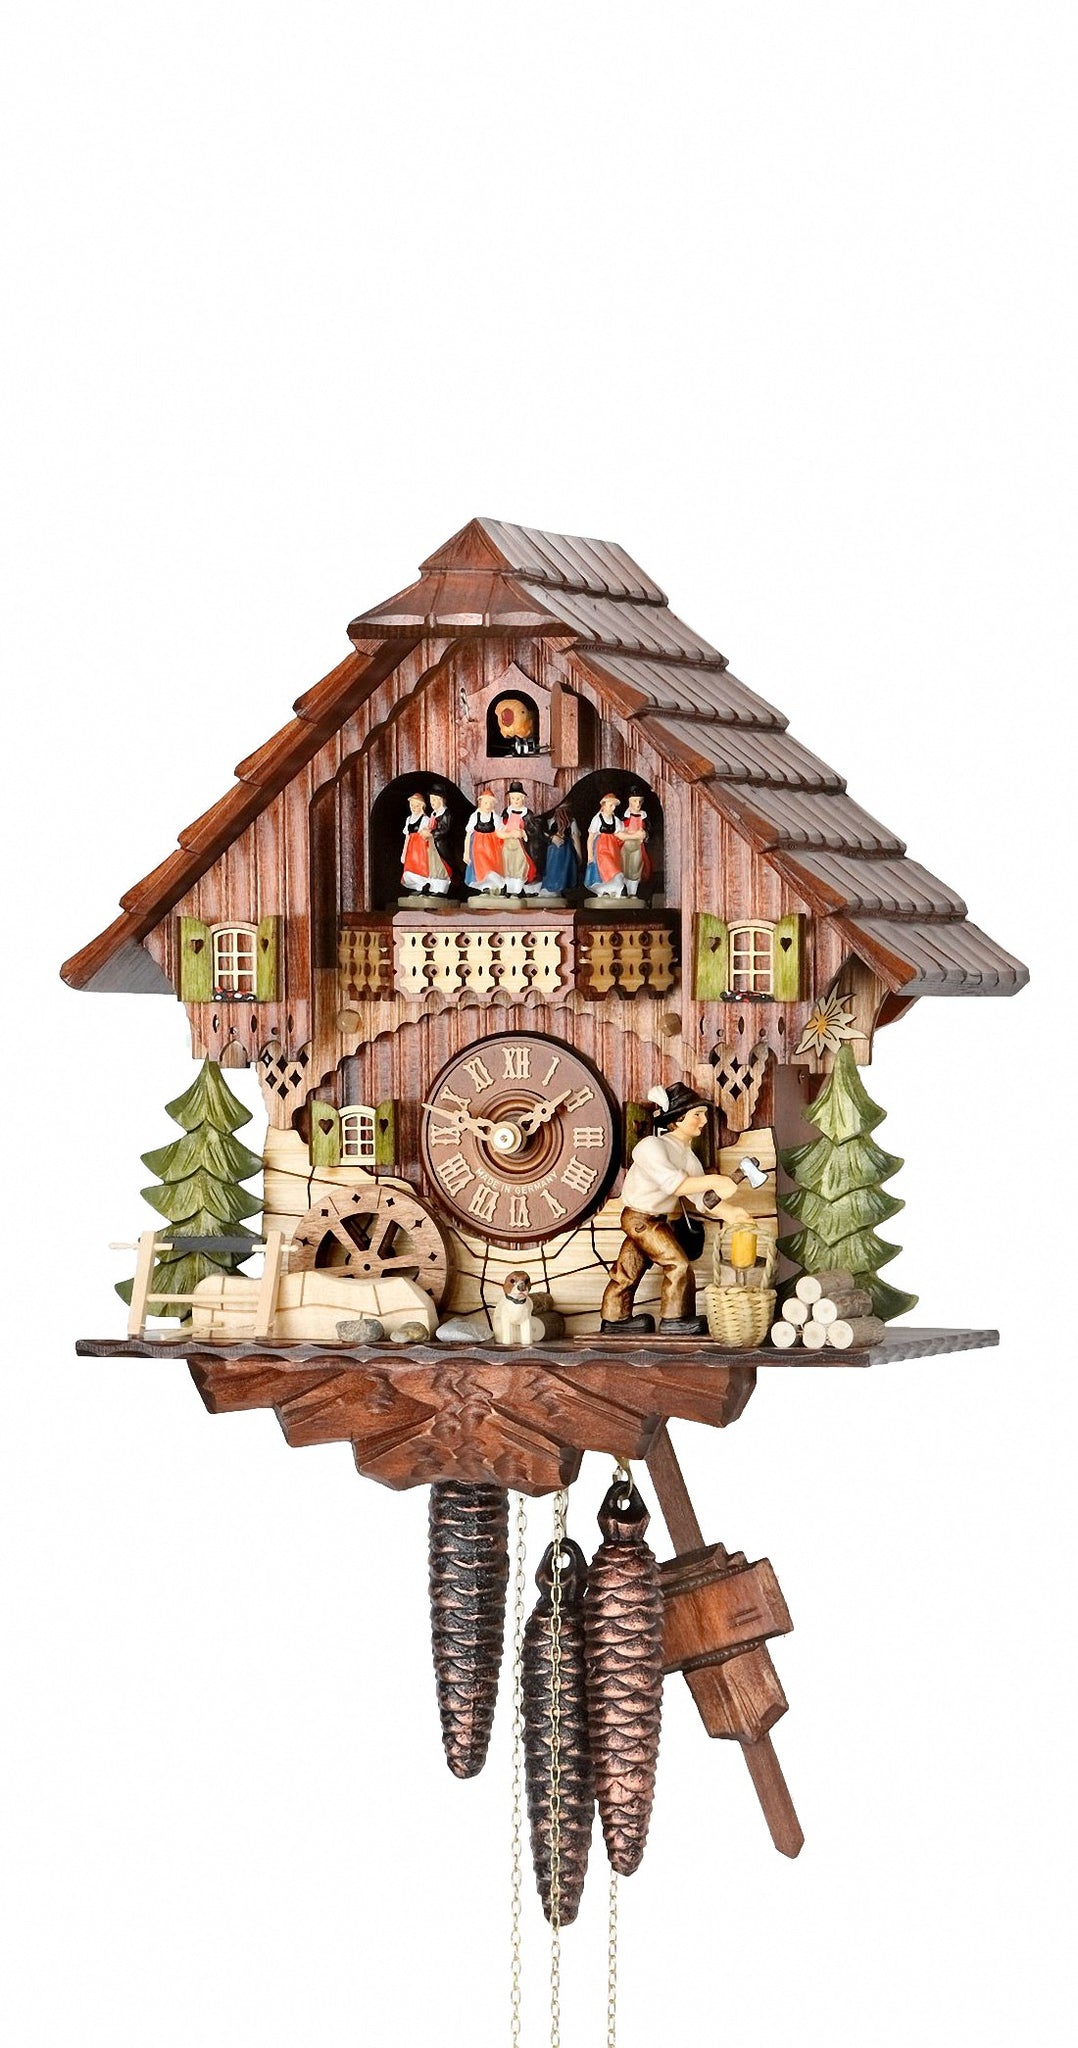 Cuckoo Clock Black Forest House Chopper Wheel 1-Day Movement Music - Cuckoo Clock Meister